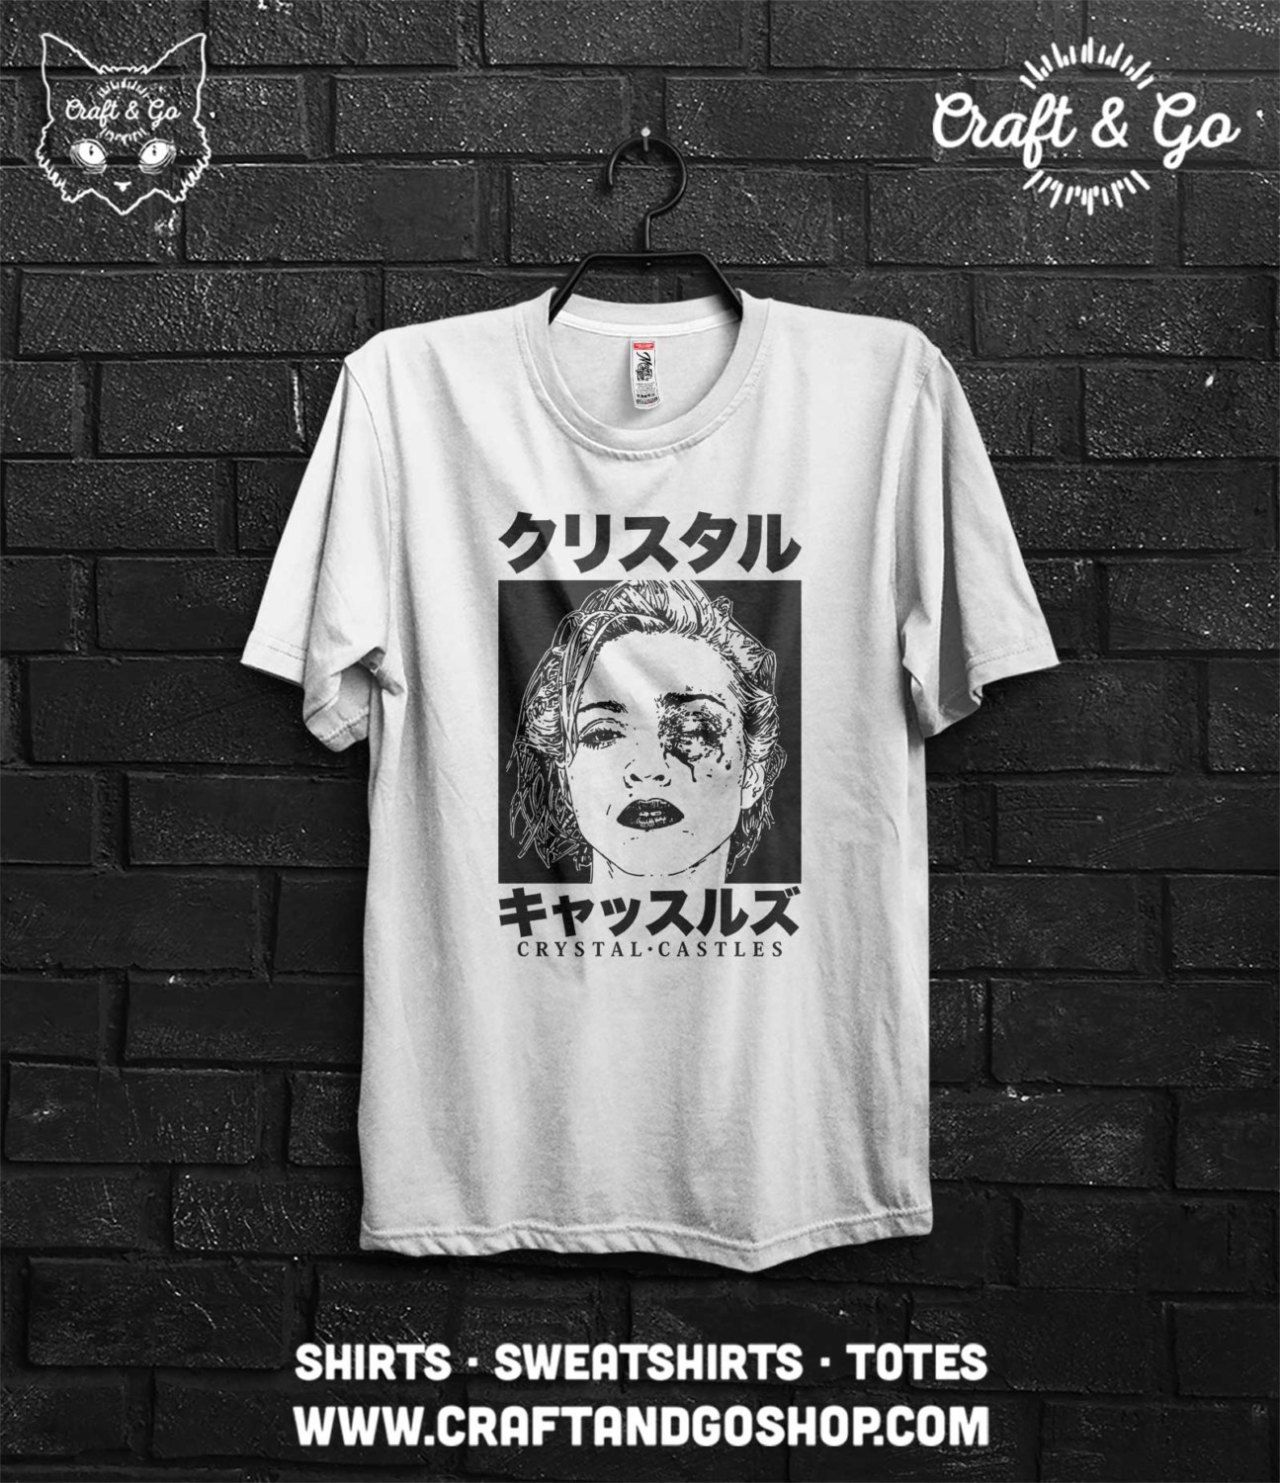 cca38b59 CRYSTAL CASTLES Japanese Shirt (alice glass ethan kath frail tumblr cult  band madonna bruised art rare yung lean japanese clothing) funny t shirts